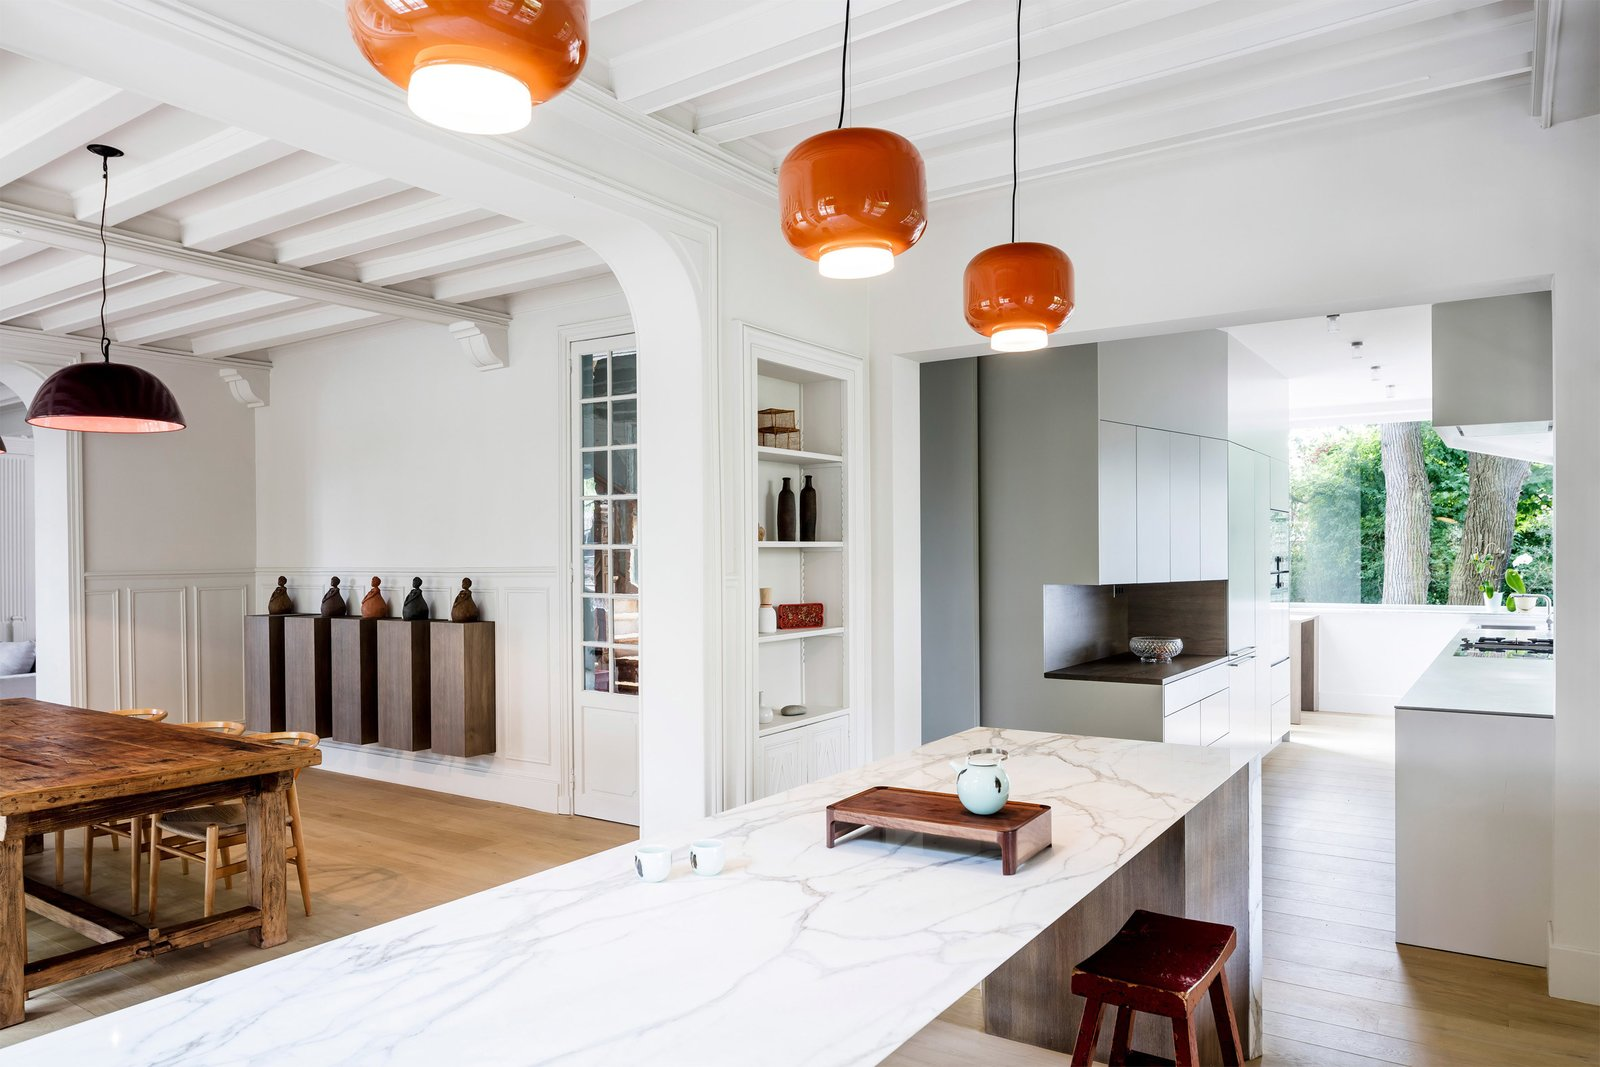 05 AM Arquitectura, 19th-century house in France   Kitchen Love by Gessato